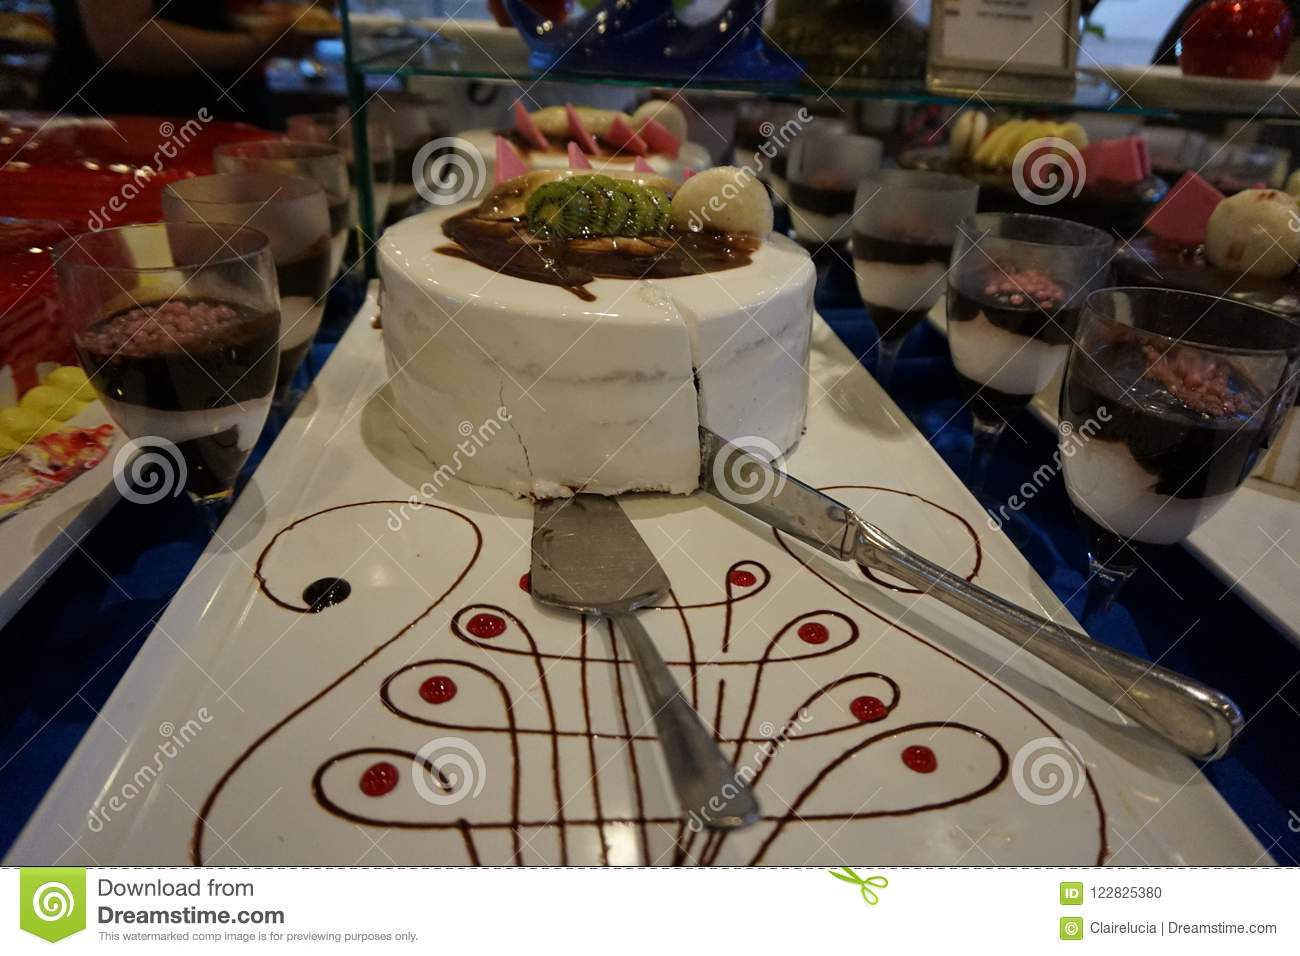 Beautiful Birthday Cake With A Knife In The Restaurant At The